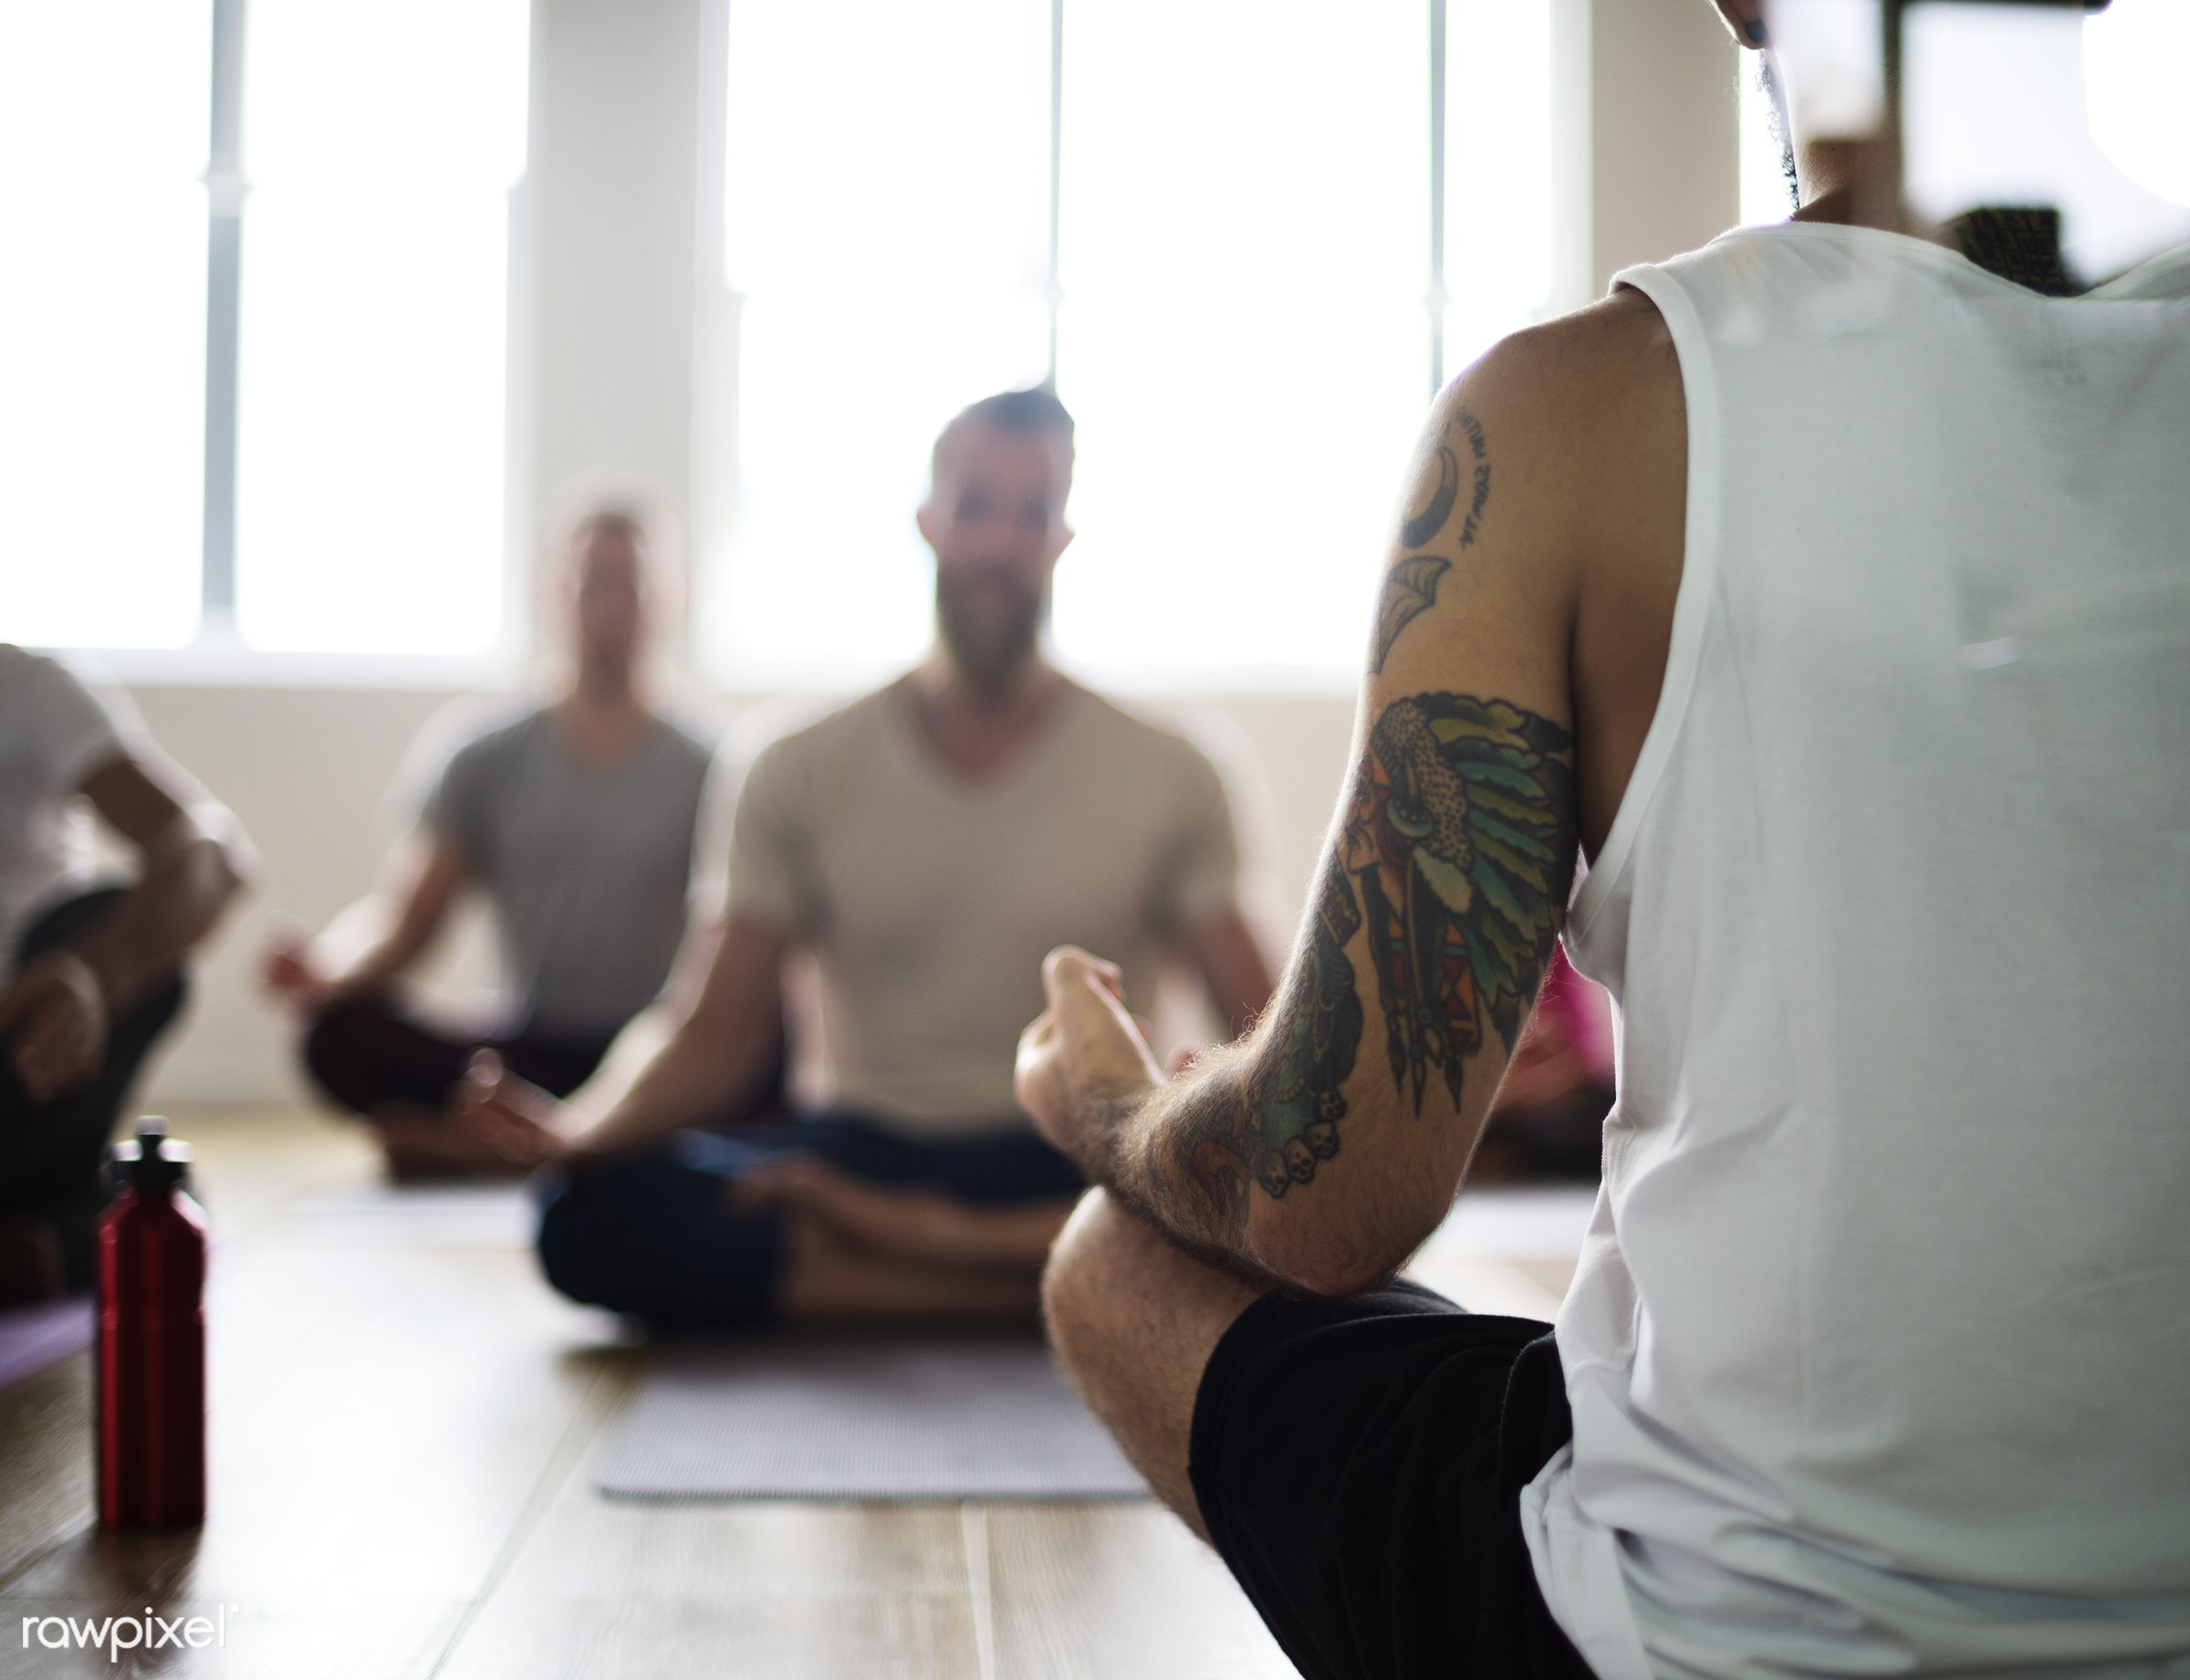 Yoga class concept  - respiration, physical, diverse, recreation, people, stretching, together, balance, practicing,...